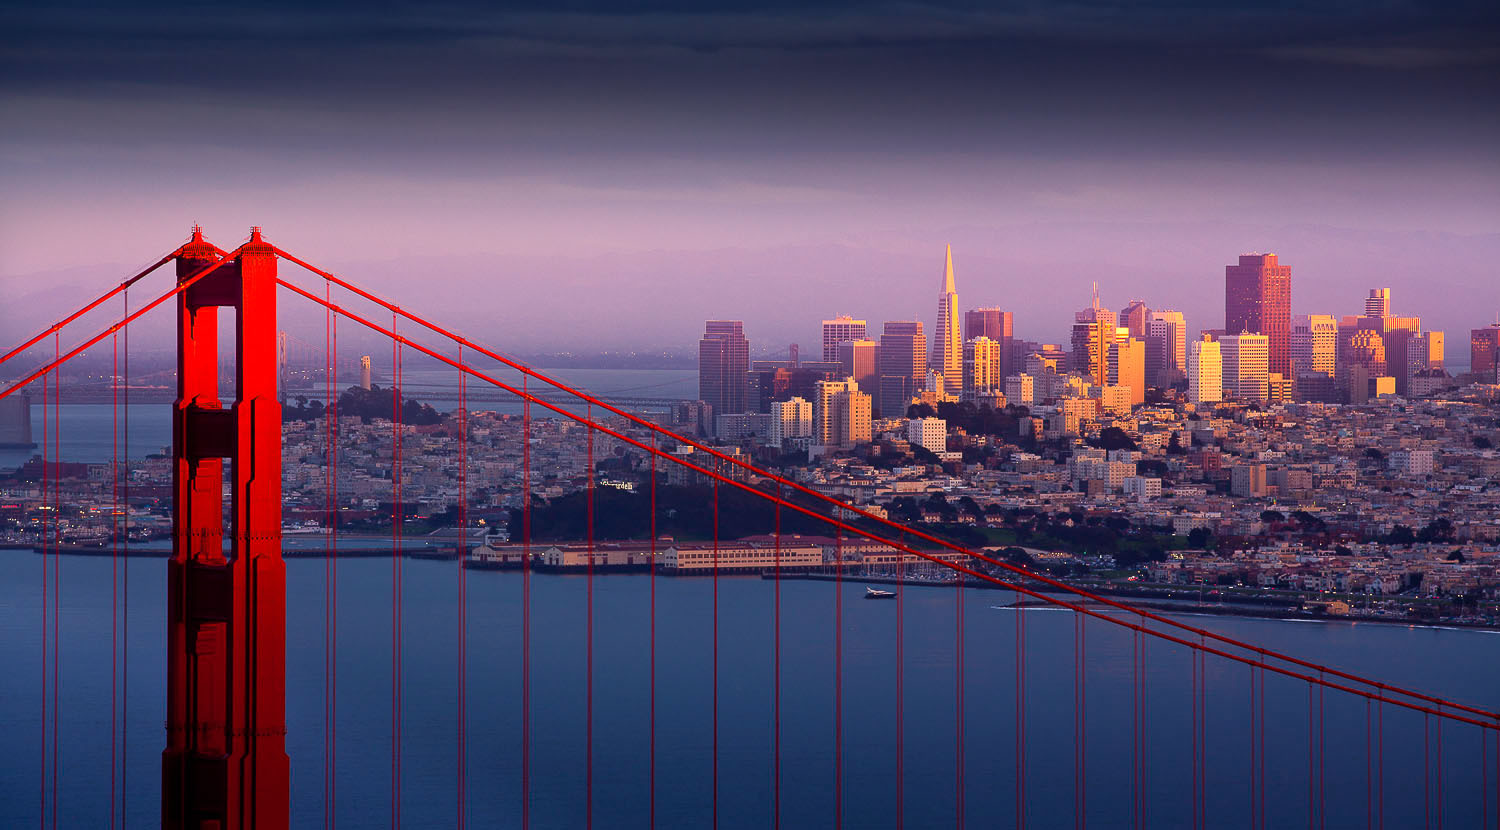 A view of San Francisco from above the Golden Gate Bridge. (Photo: SanFrancisco.travel)